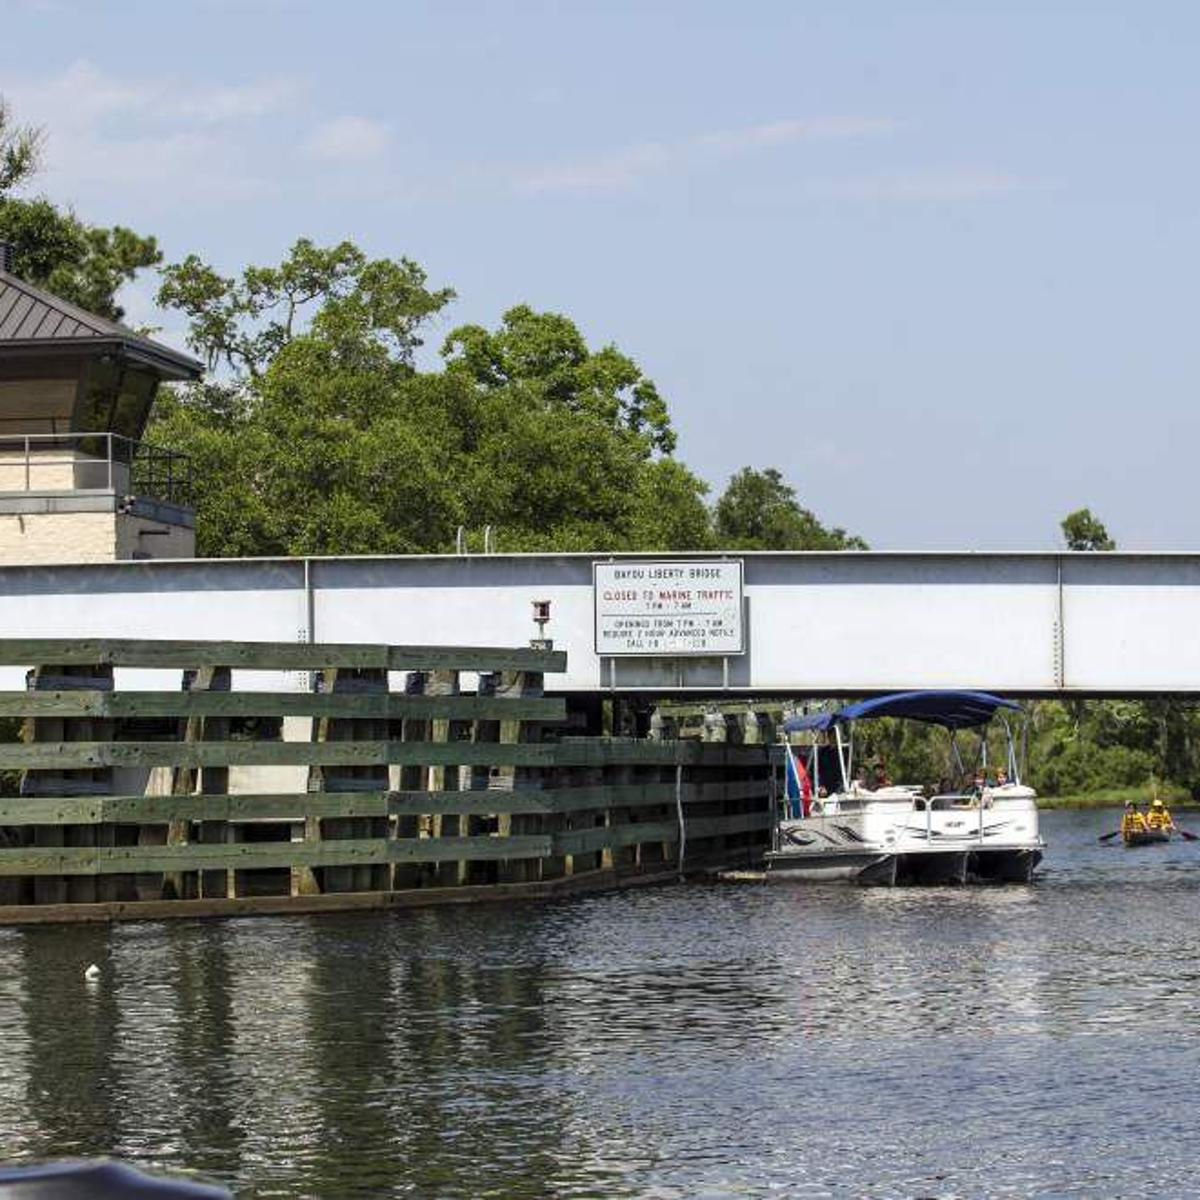 Bayou Liberty Road, Fairview-Riverside State Park reopen as